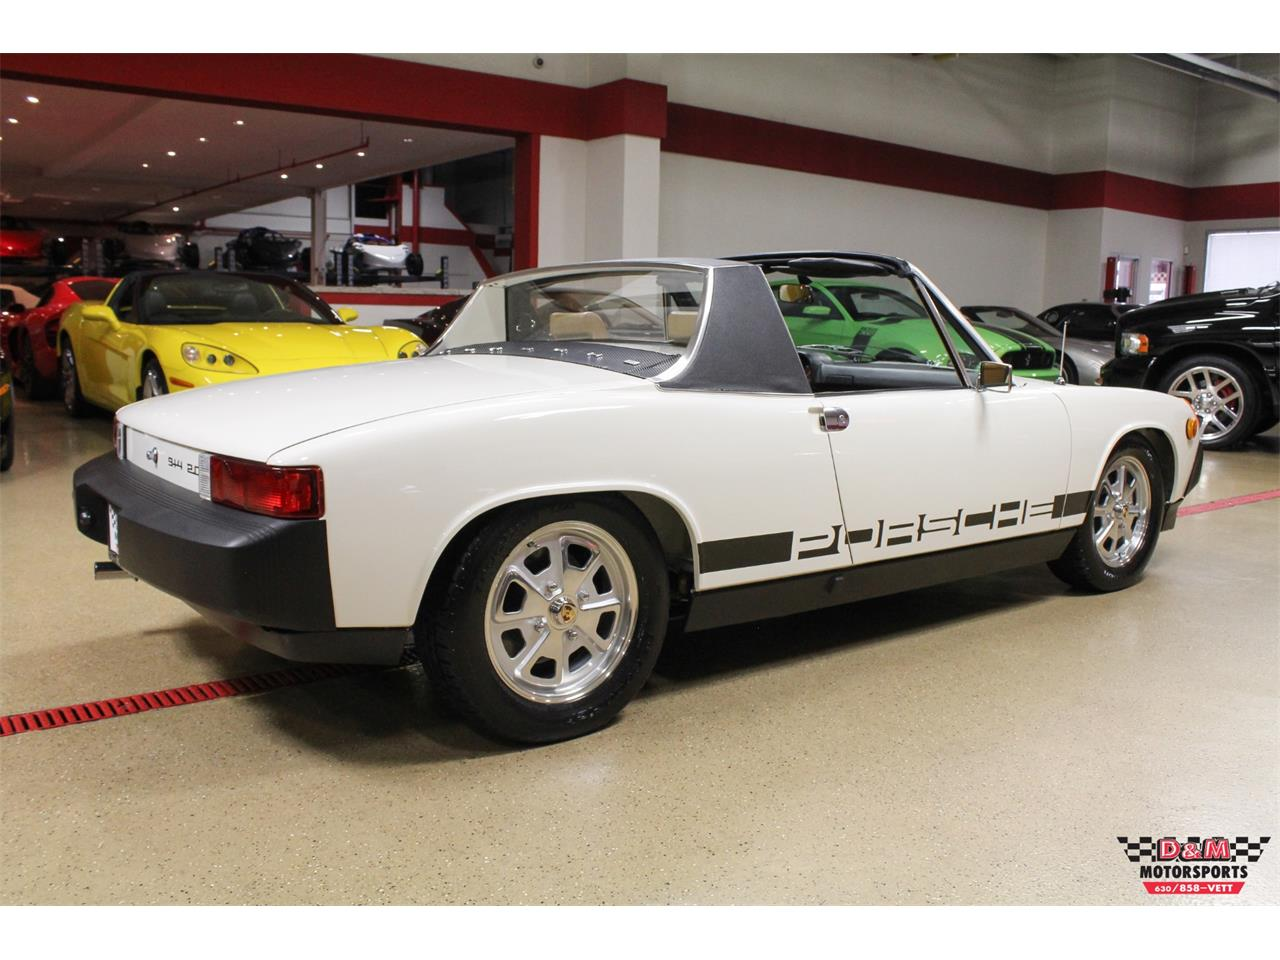 Large Picture of 1976 Porsche 914 Offered by D & M Motorsports - P8QY